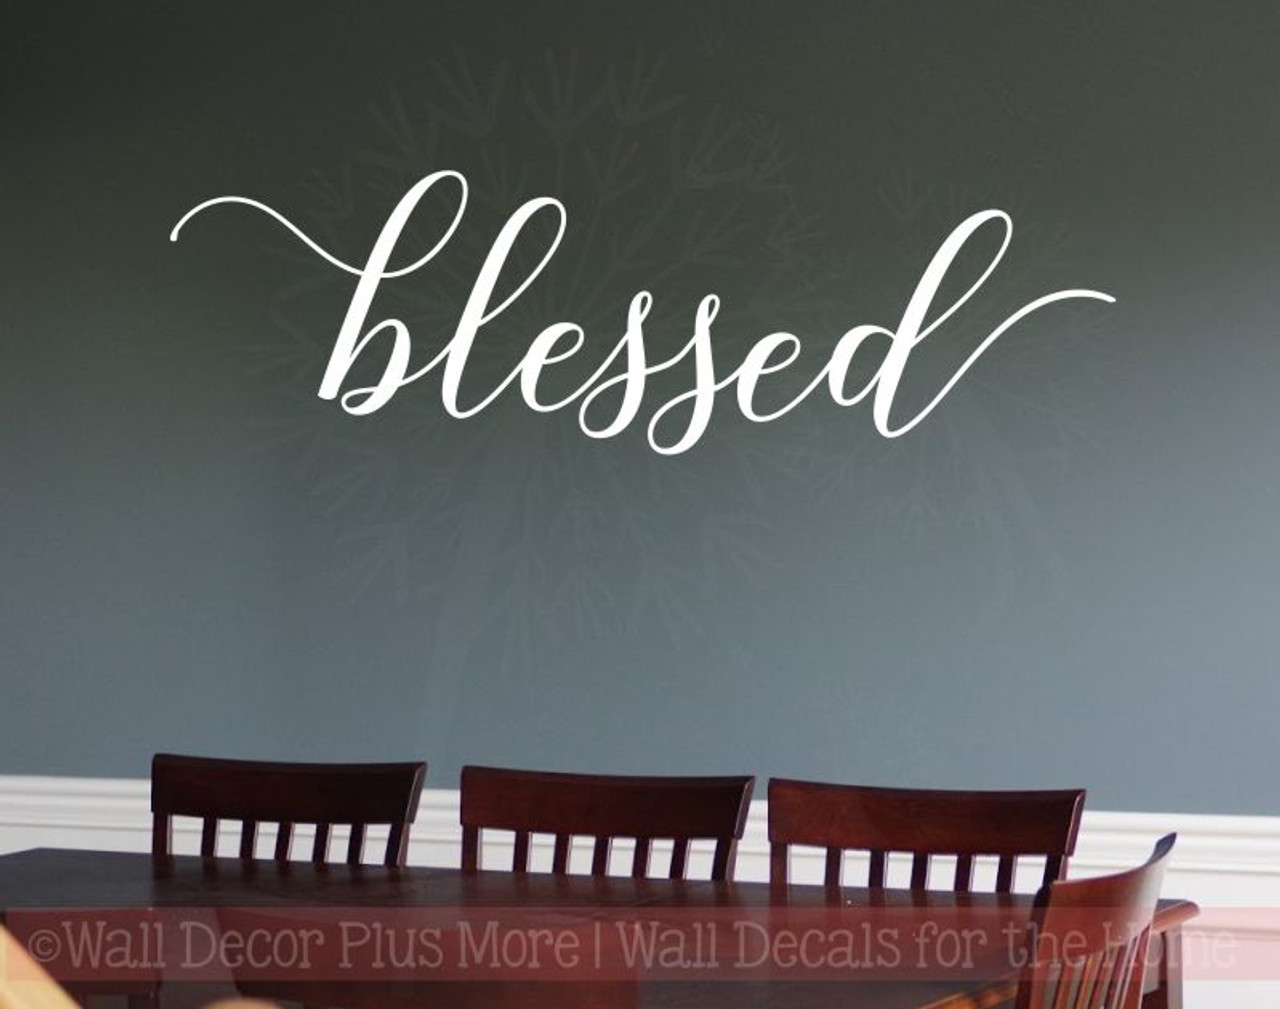 Blessed Cursive Elegant Wall Stickers Decals Vinyl Lettering Kitchen Home Decor Art-White : elegant wall decals - www.pureclipart.com